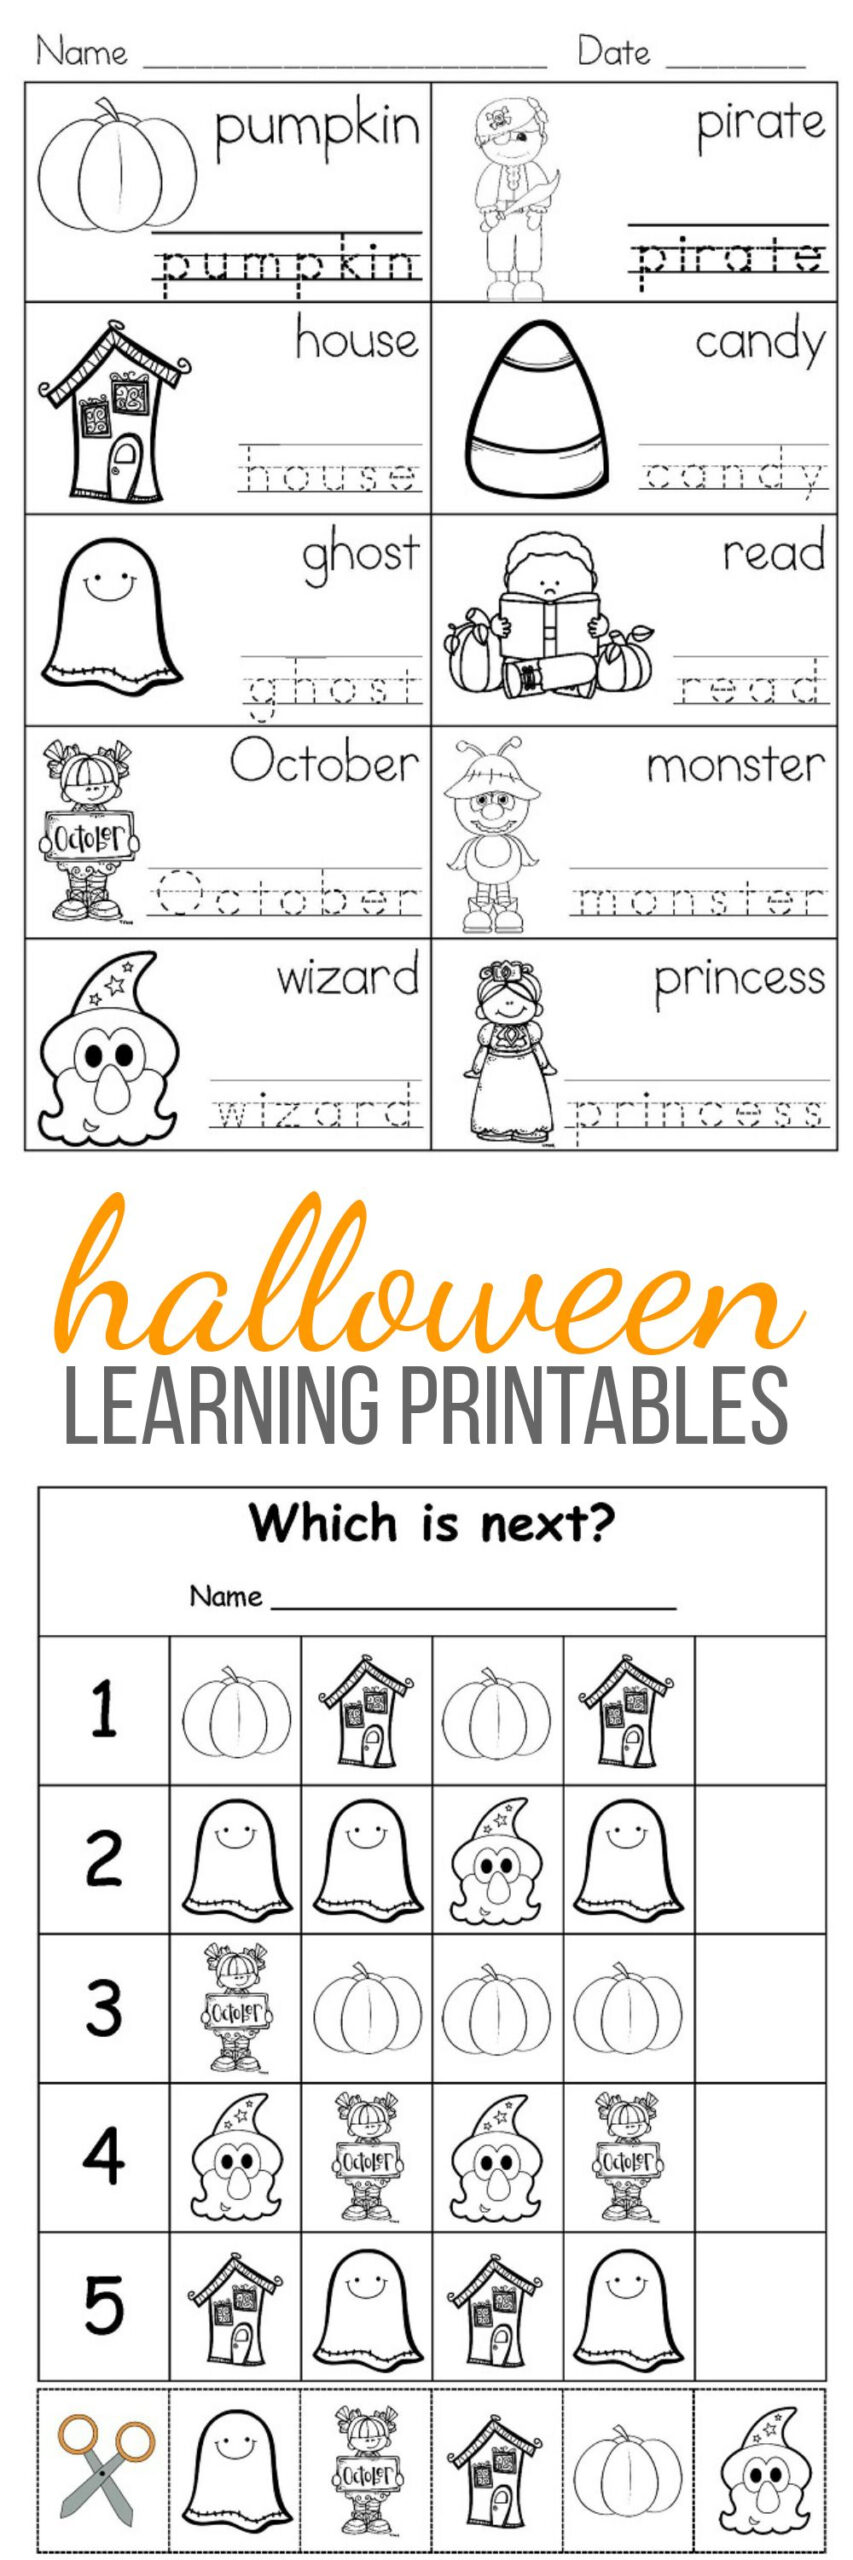 Halloween Fun Sheets